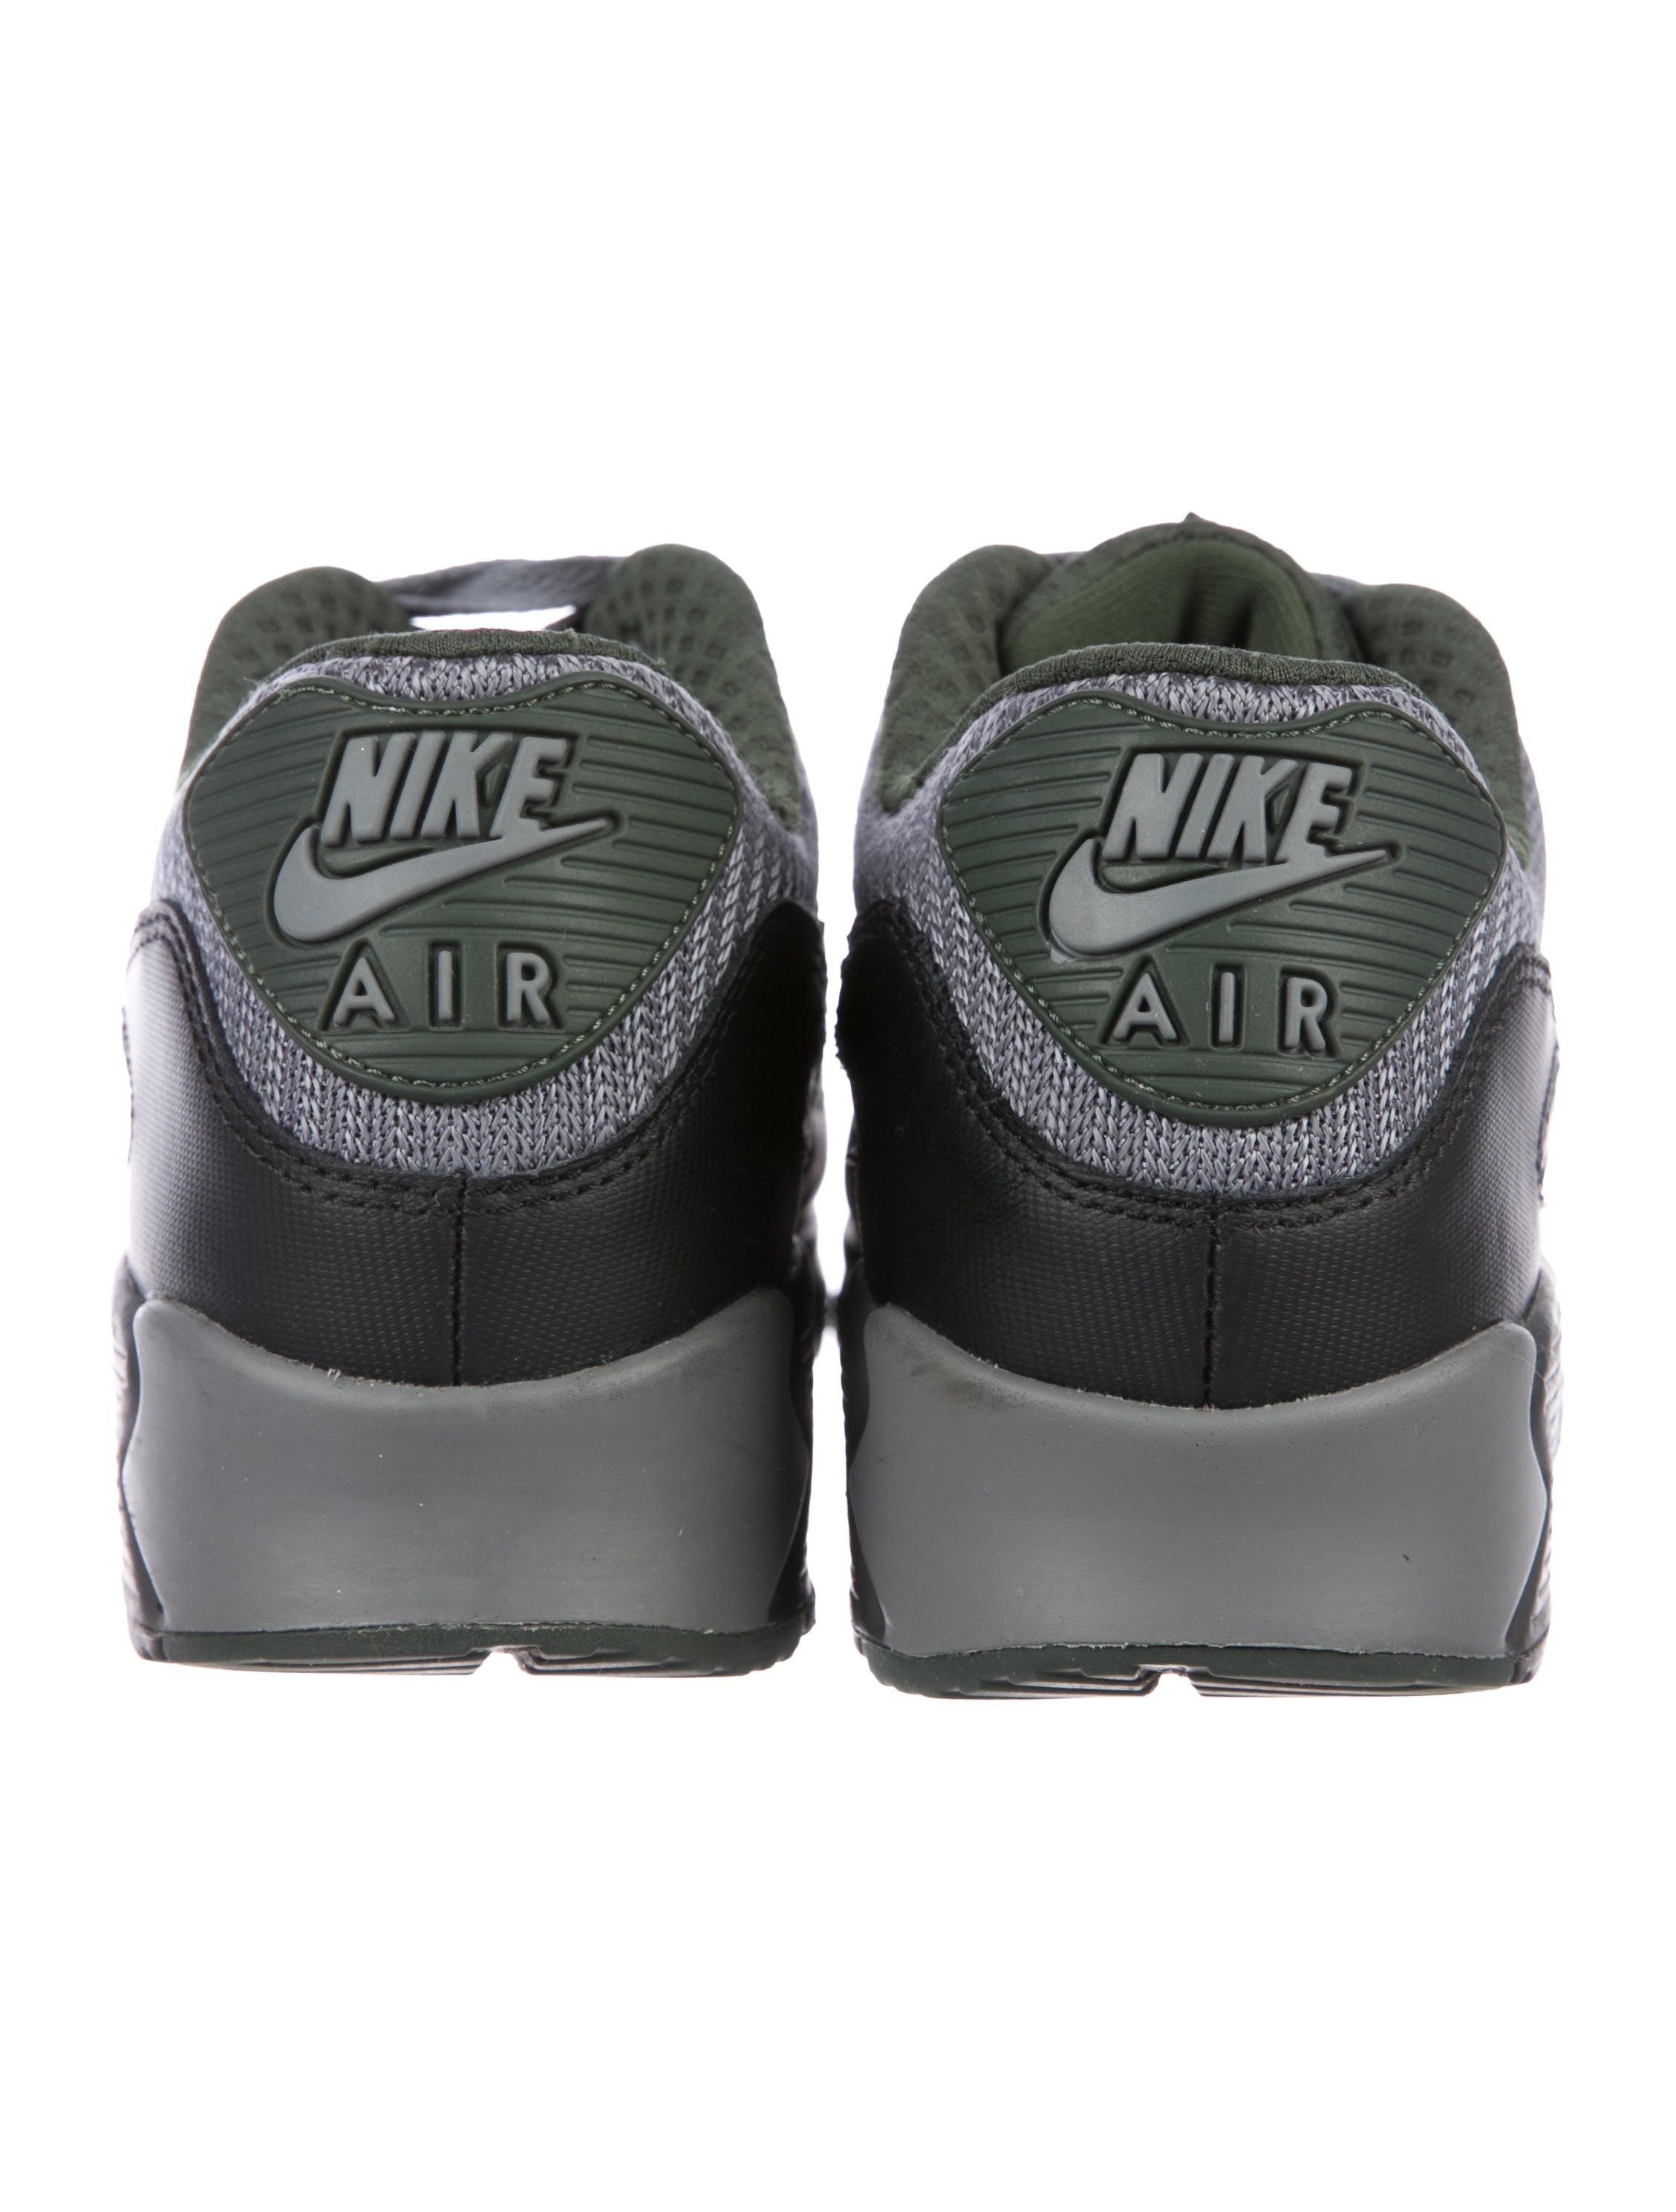 Air Max 90 Essential Sneakers | Nike air max, Air max 90